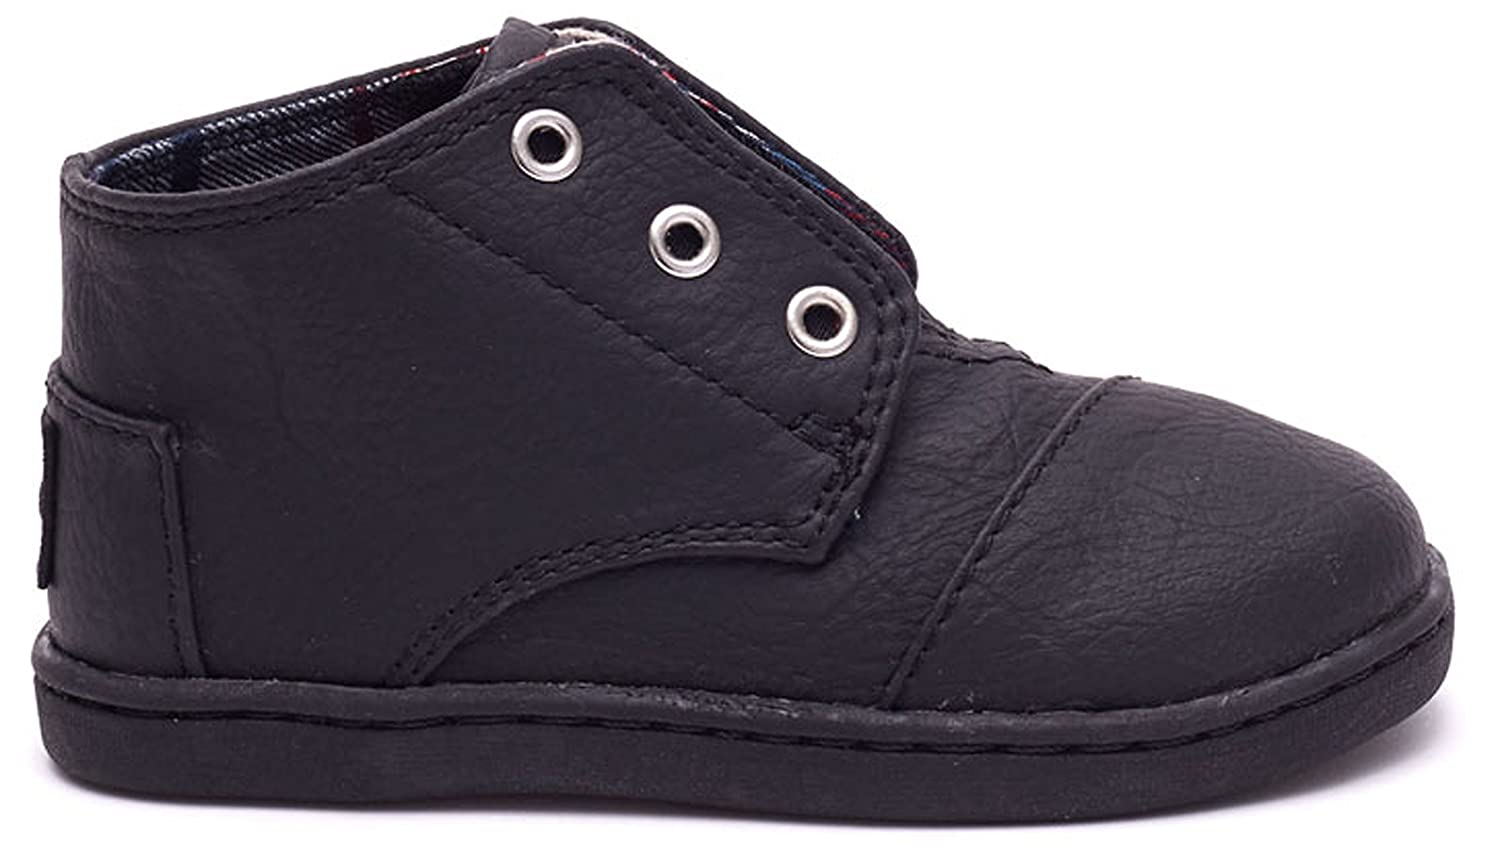 bcba9ee0f50 TOMS Kids Unisex Paseo Mid (Infant Toddler Little Kid) Black Synthetic  Leathe...  Amazon.in  Baby